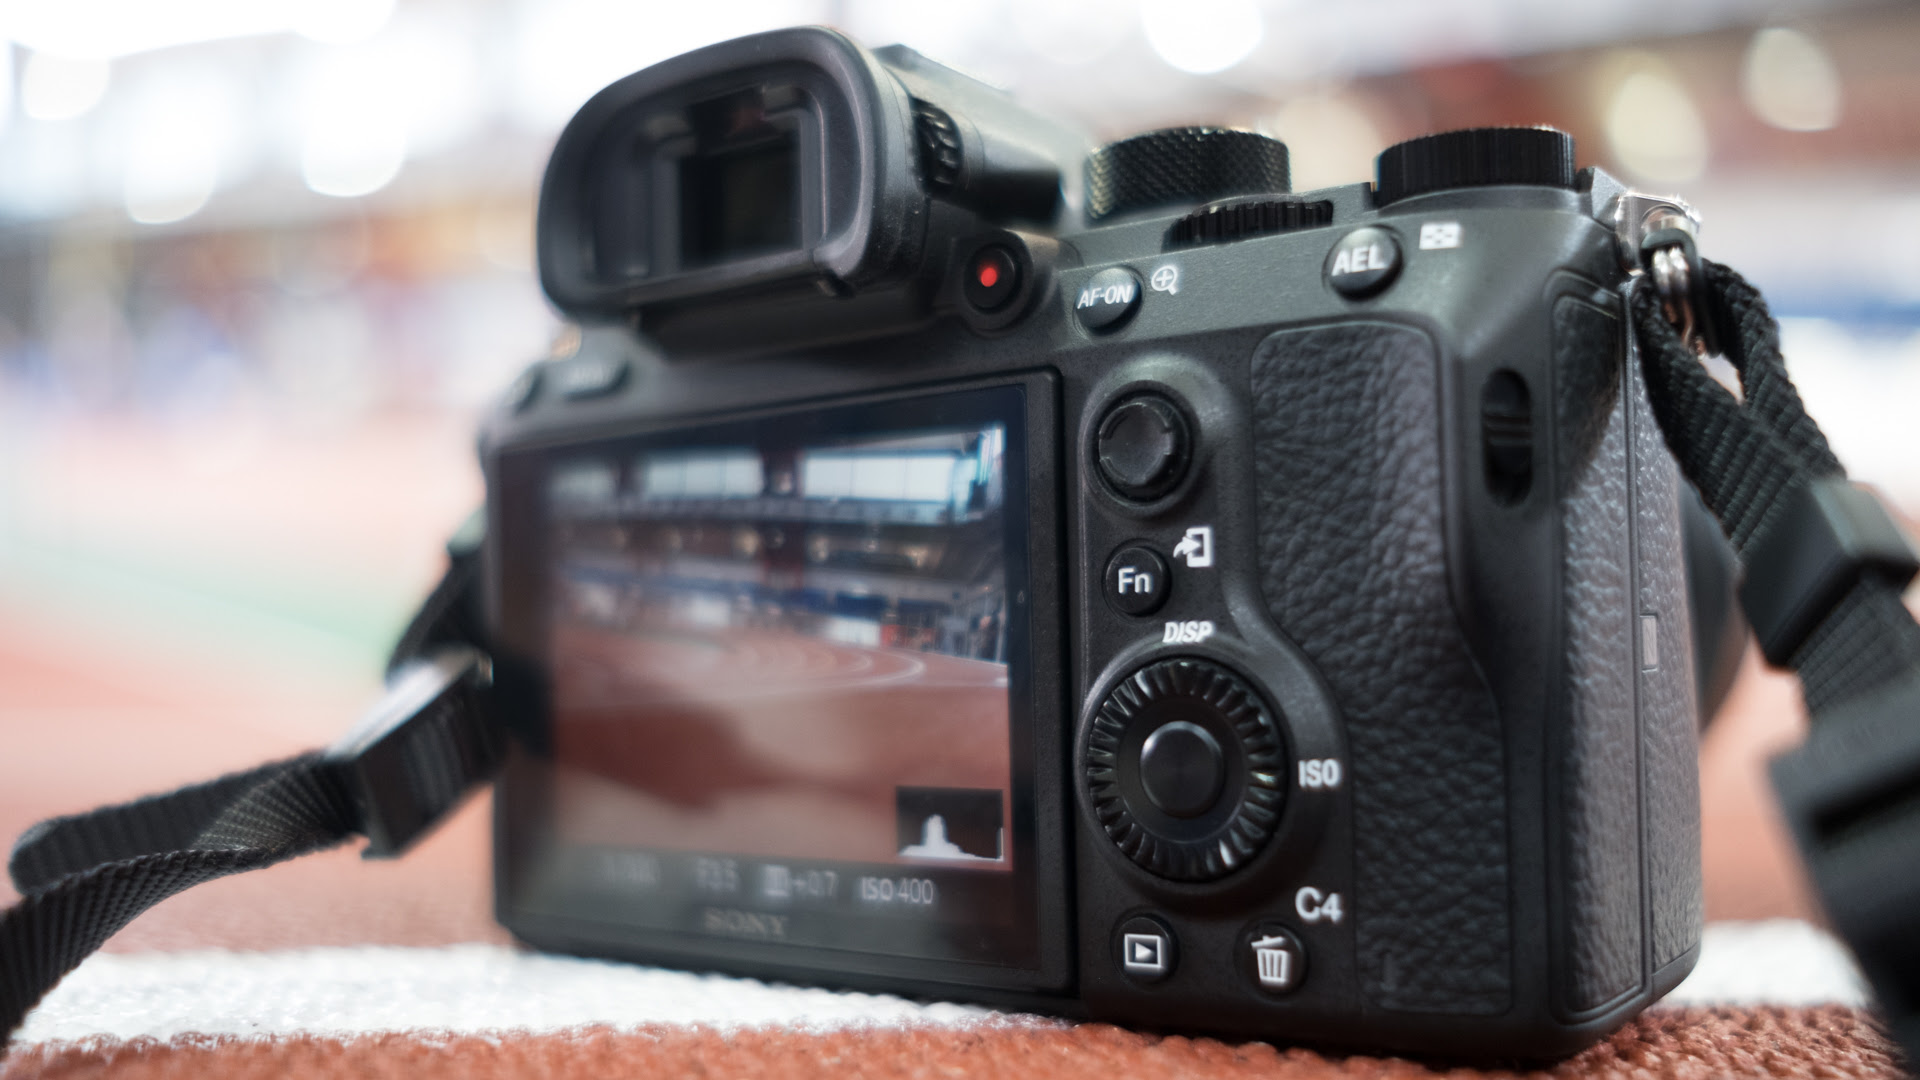 Sony A9 II: does this leaked image show Sony's next full-frame mirrorless camera?